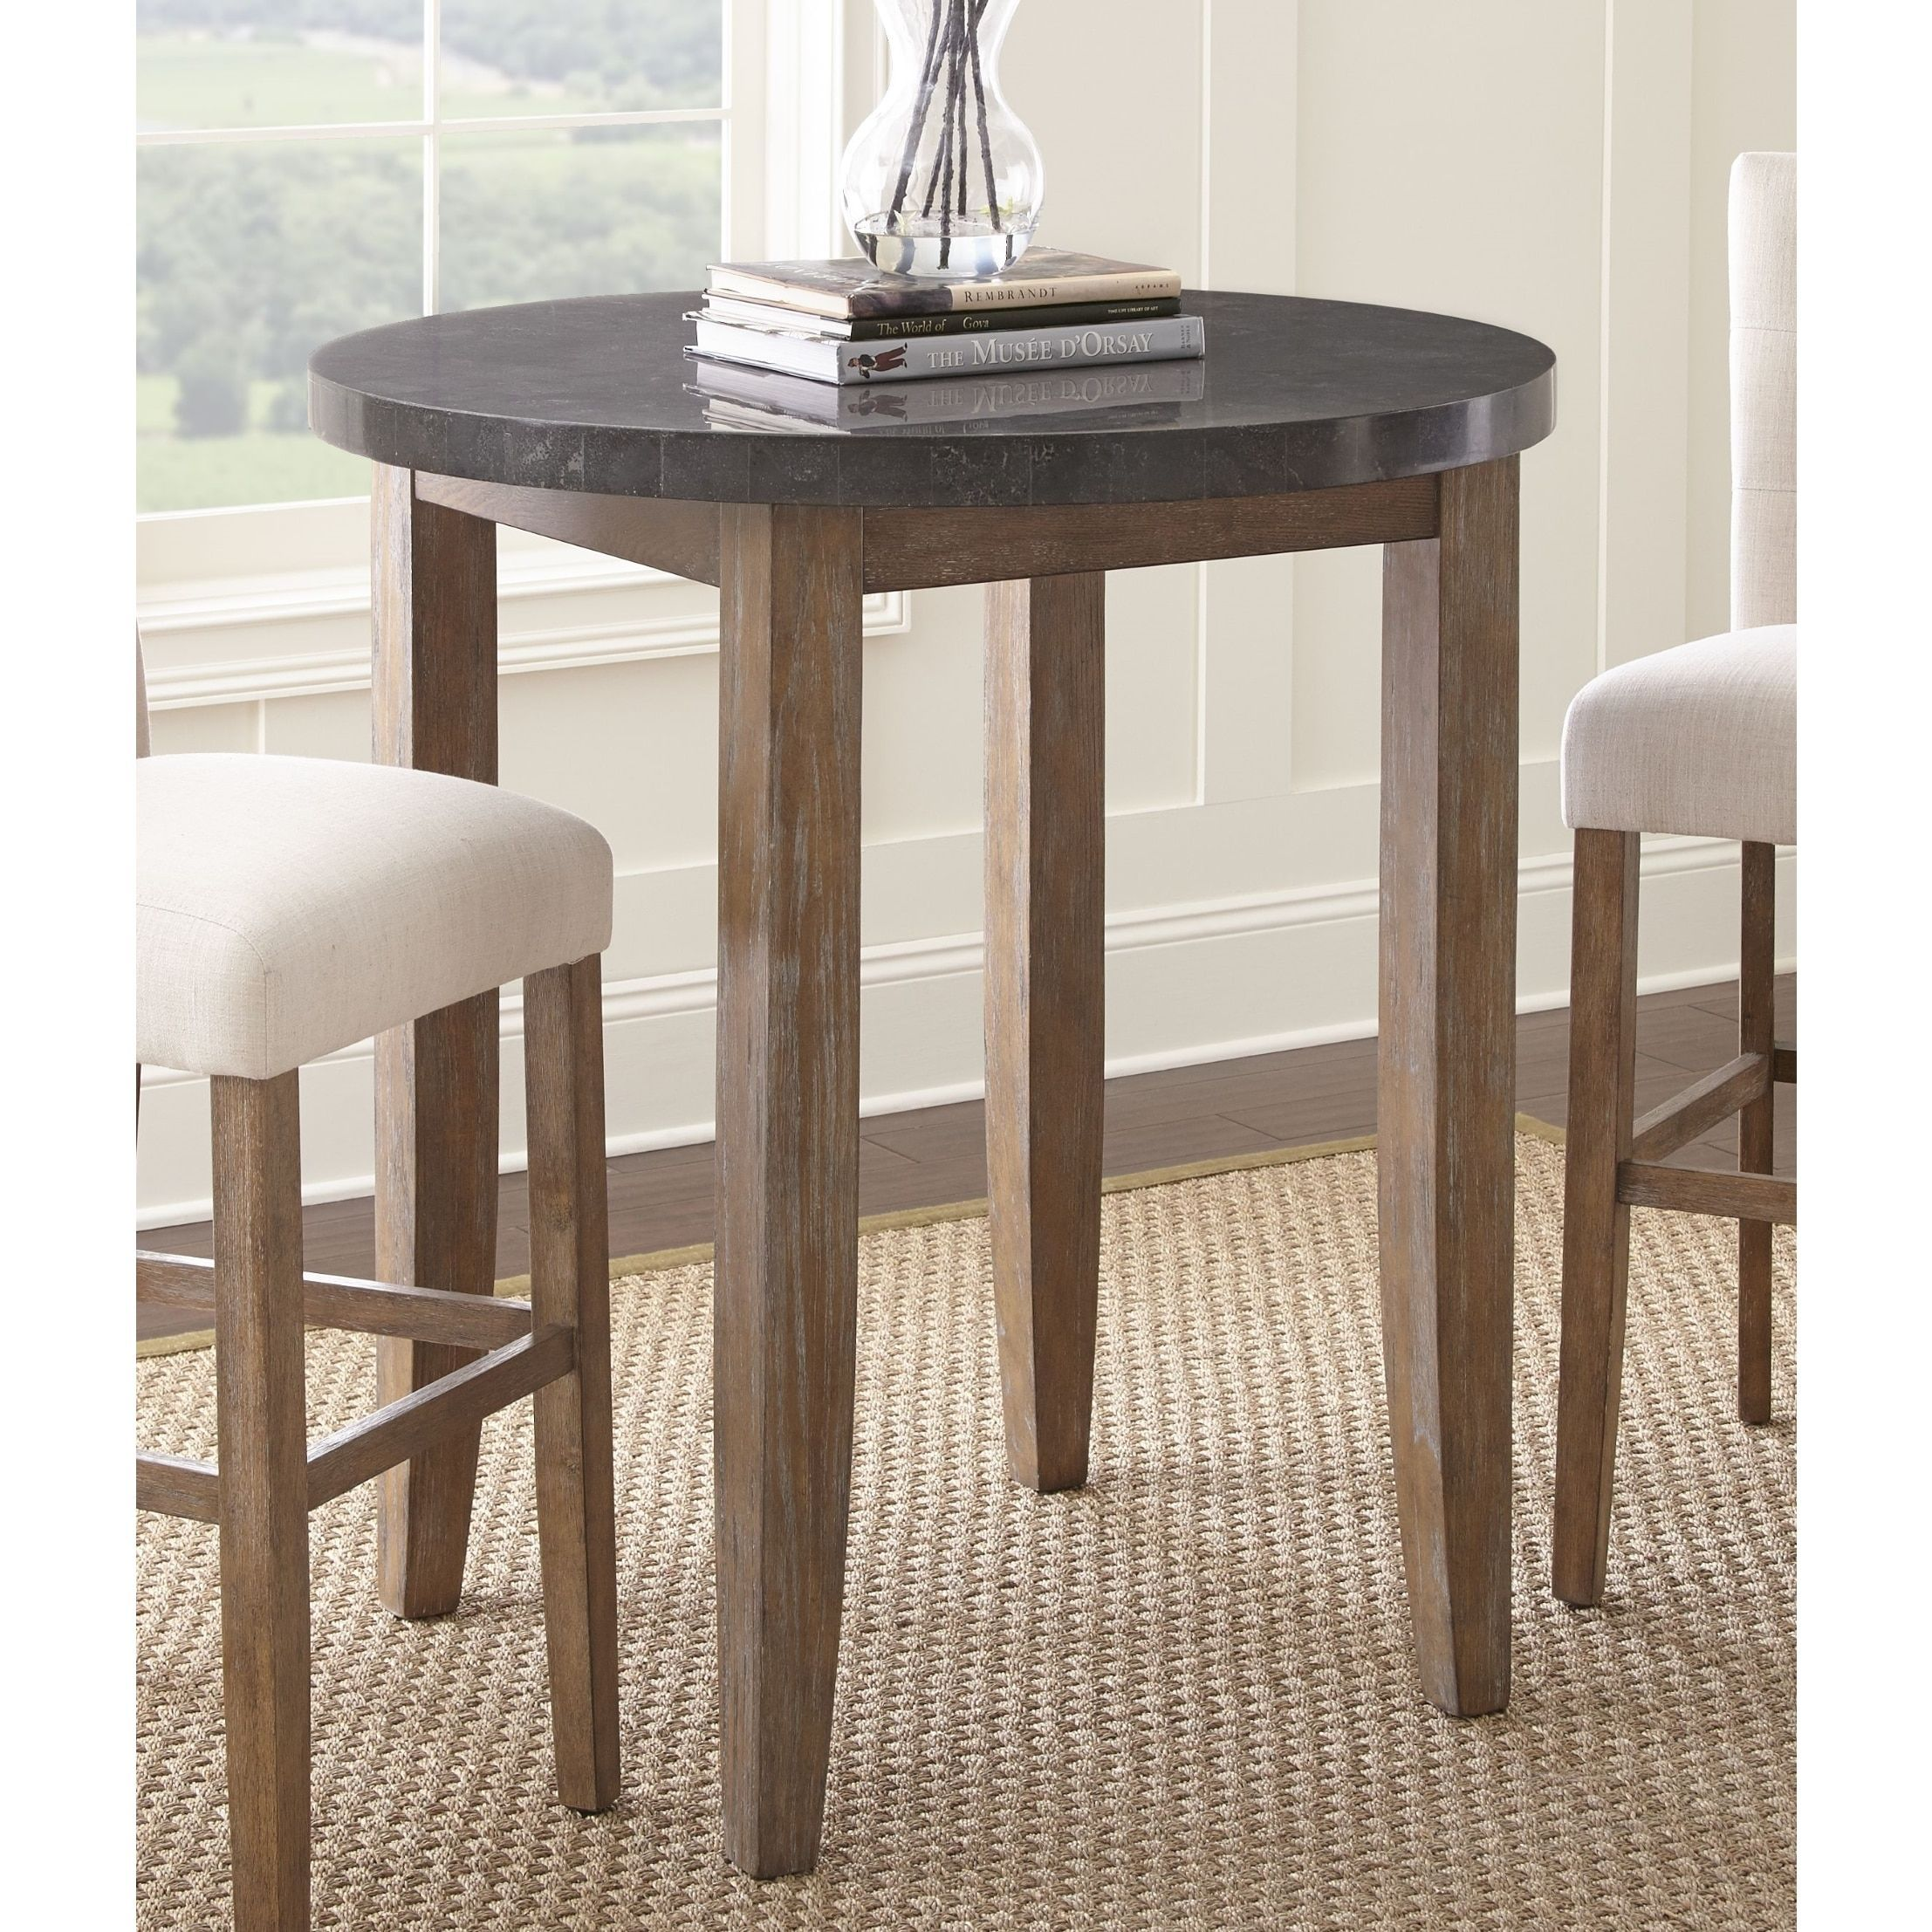 The Gray Barn Overlook 40 Inch Round Stone Top Pub Table